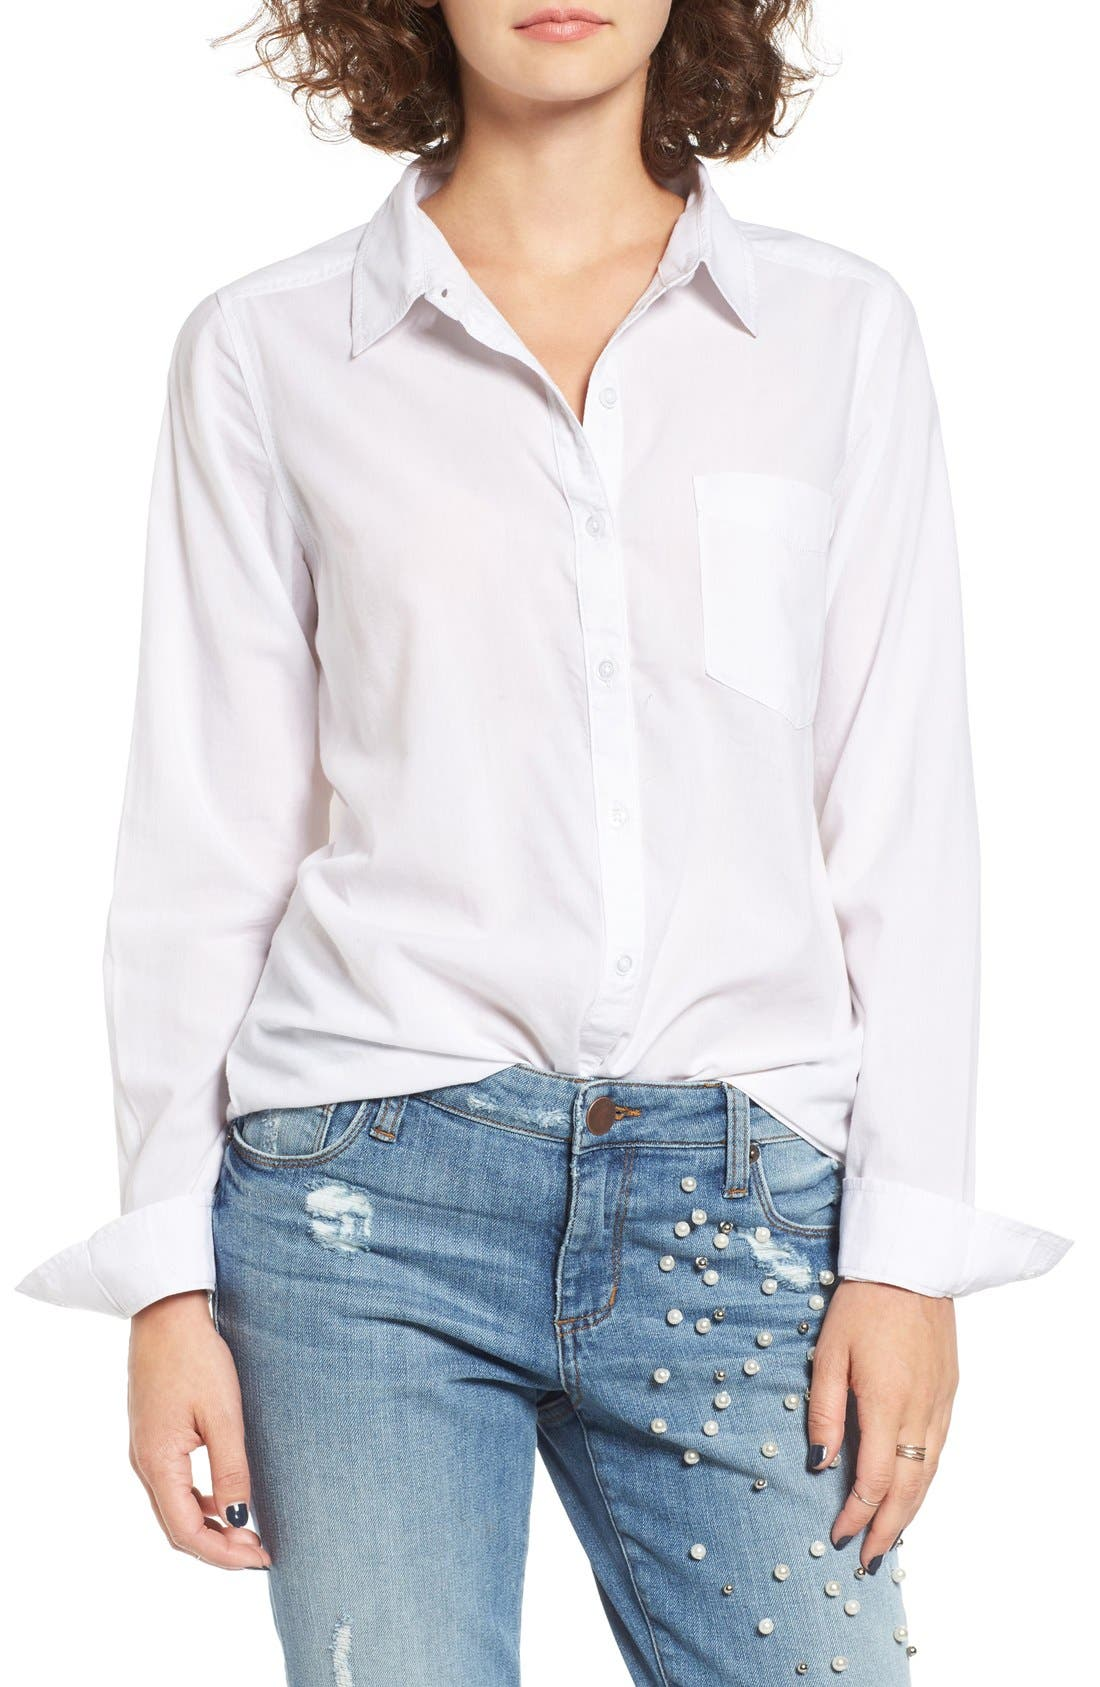 Cotton Blend Button Down Shirt,                         Main,                         color, White